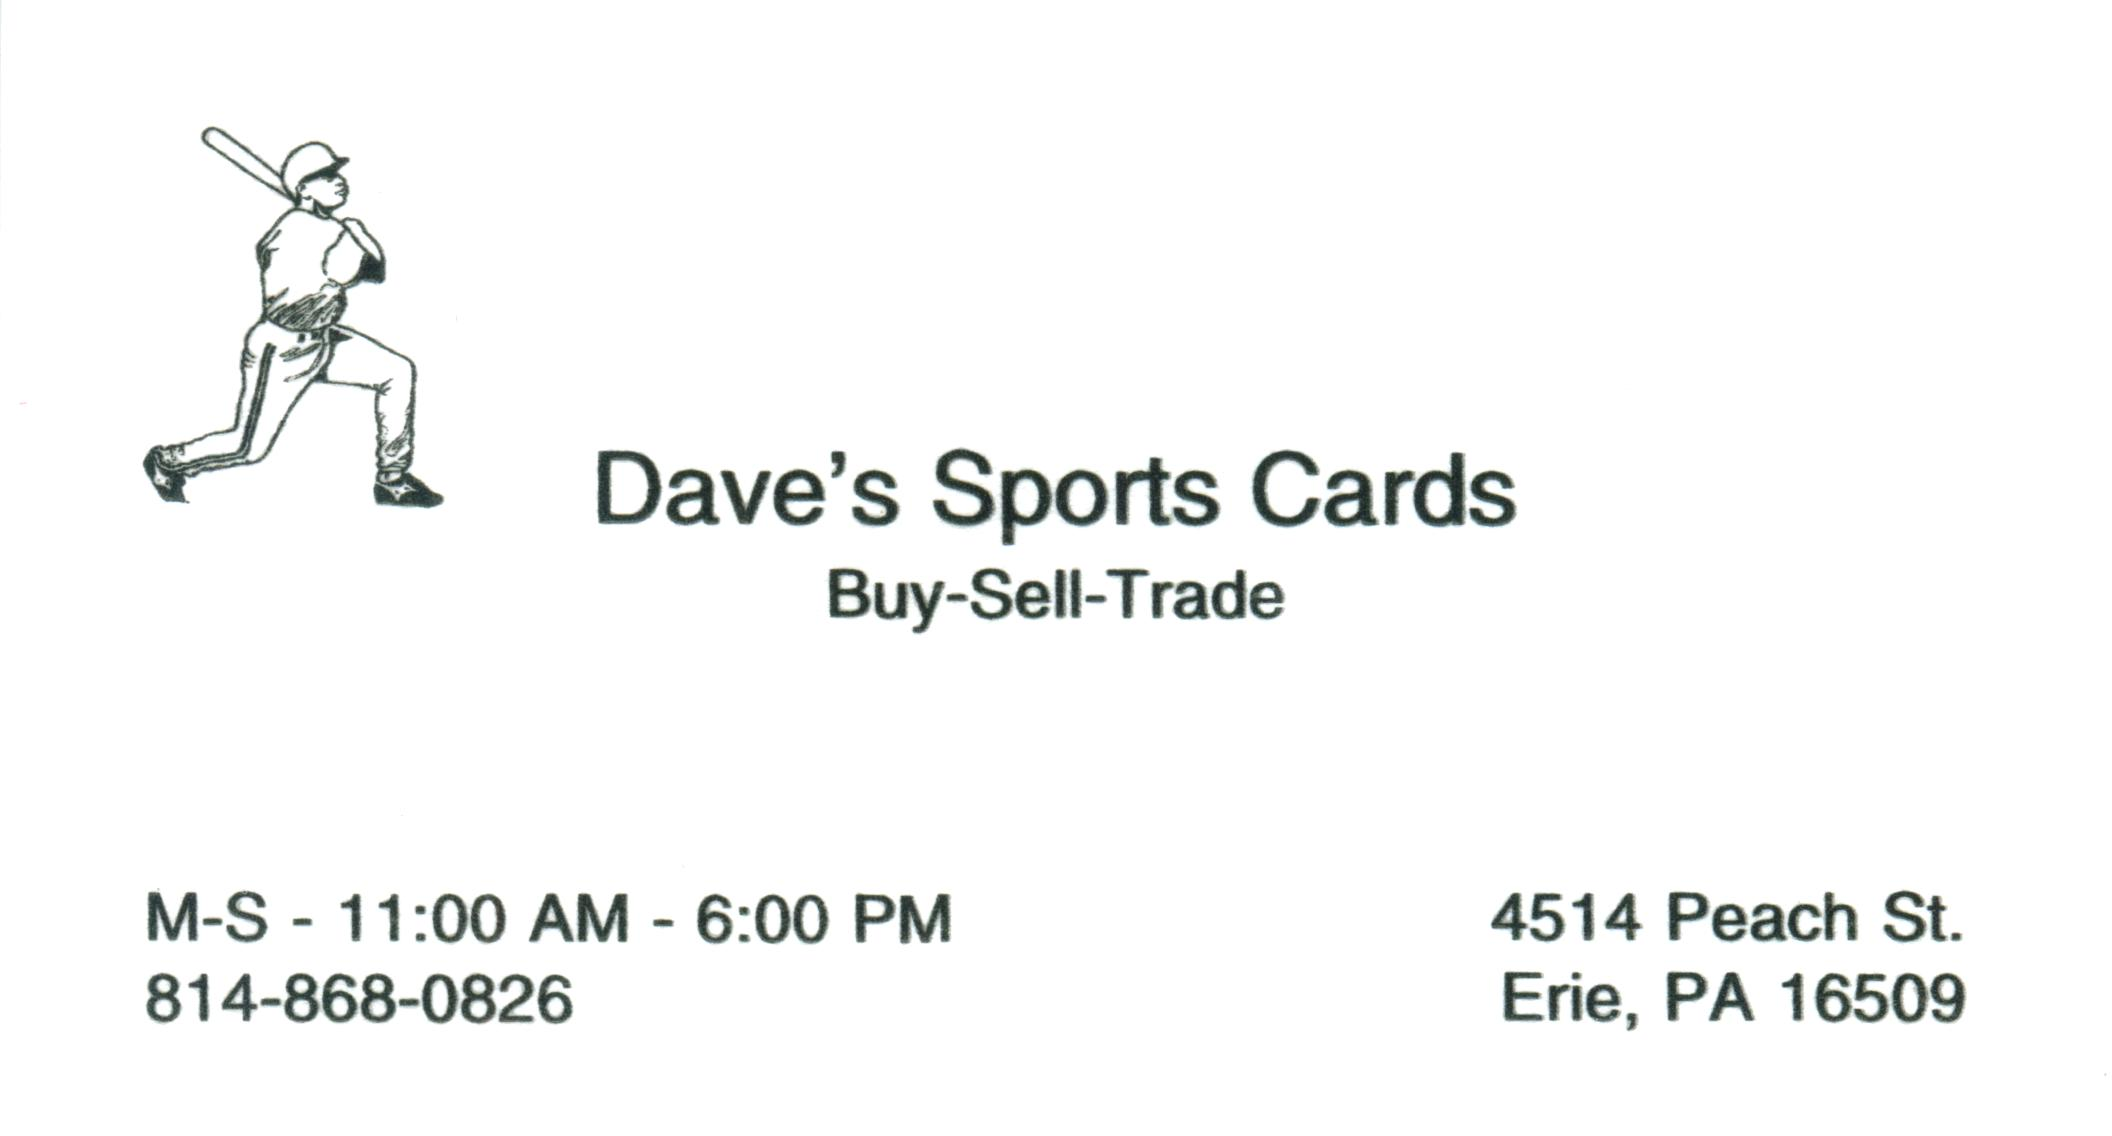 Dave's Sports Cards